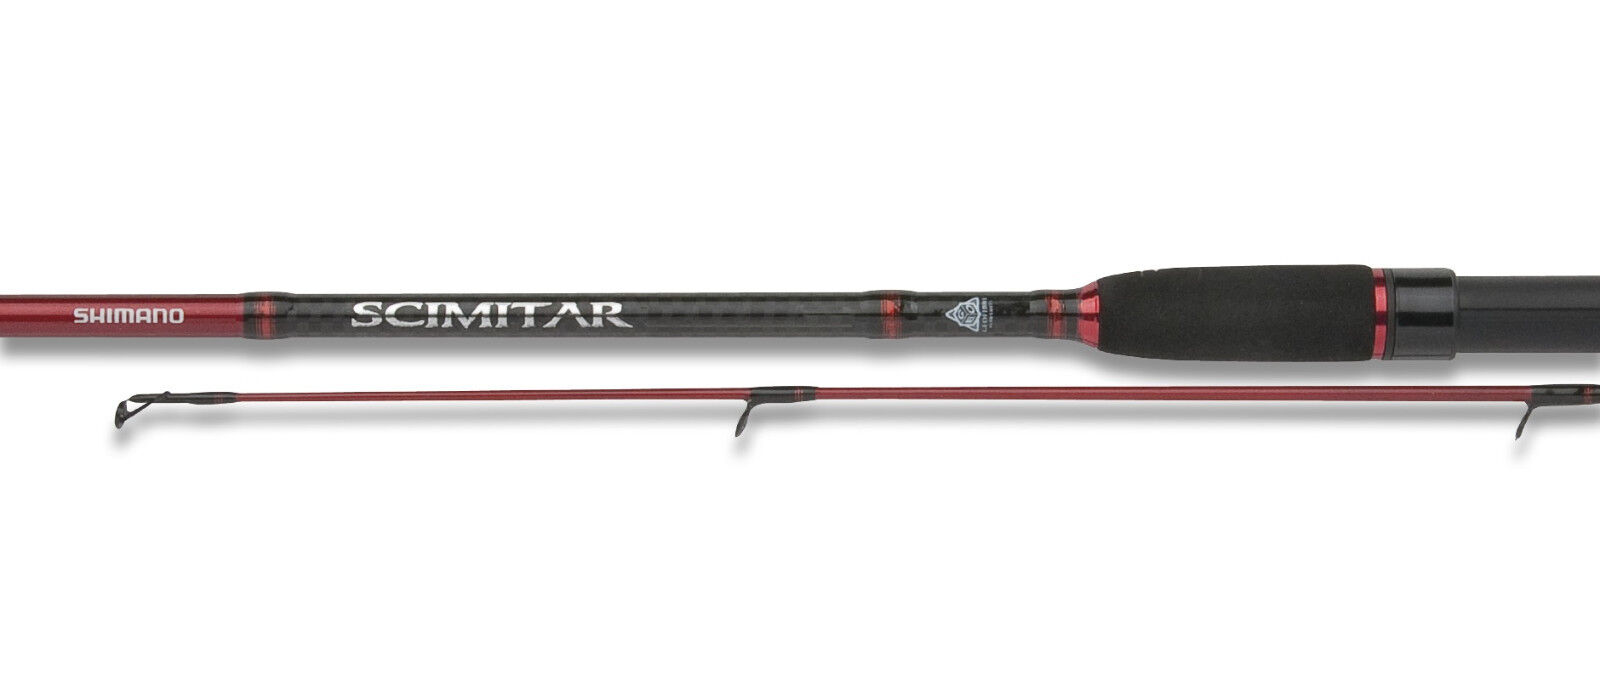 Shimano Scimitar AX Spin Rute Raubfischrute Hechrute Spinnrute Spinrute Rod